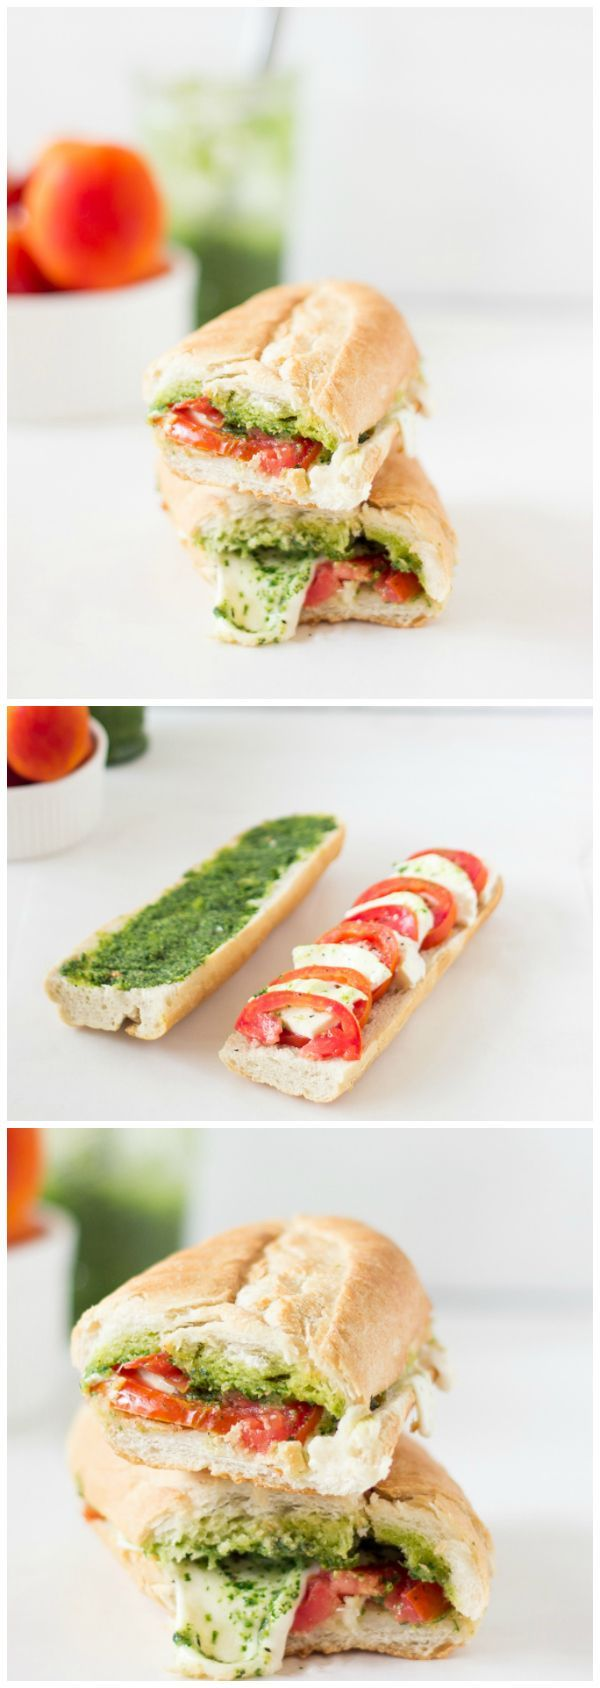 Caprese sandwich with a twist — toasted with mozzarella and parsley pesto. Perfect for a springtime picnic.